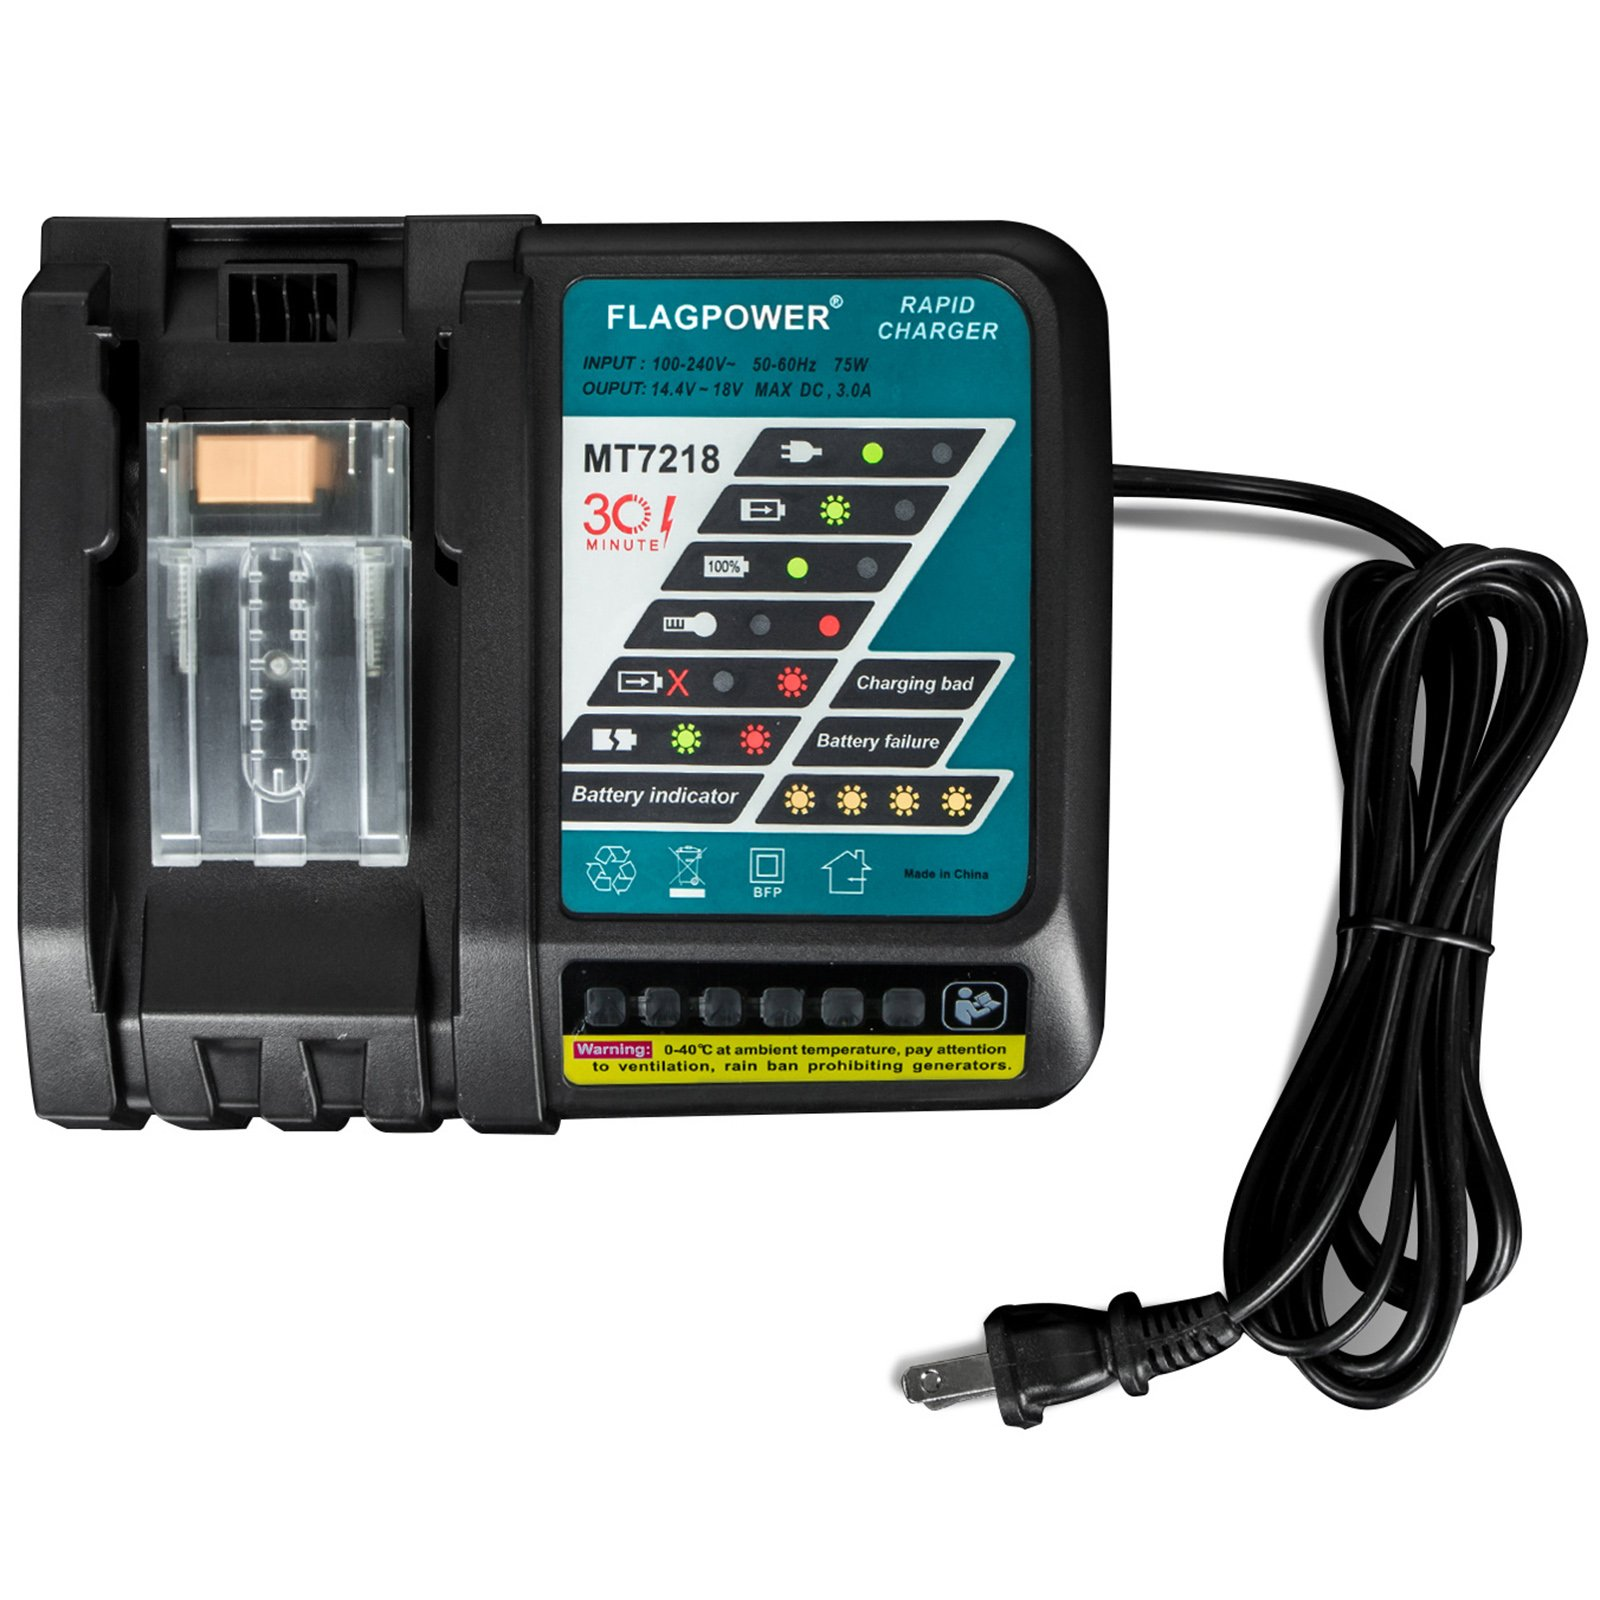 FLAGPOWER DC18RC Lithium-Ion Battery Charger for Makita 14.4V-18V Li-Ion Battery BL1830 BL1815 BL1840 150W High-Power Cooling Fan Inside